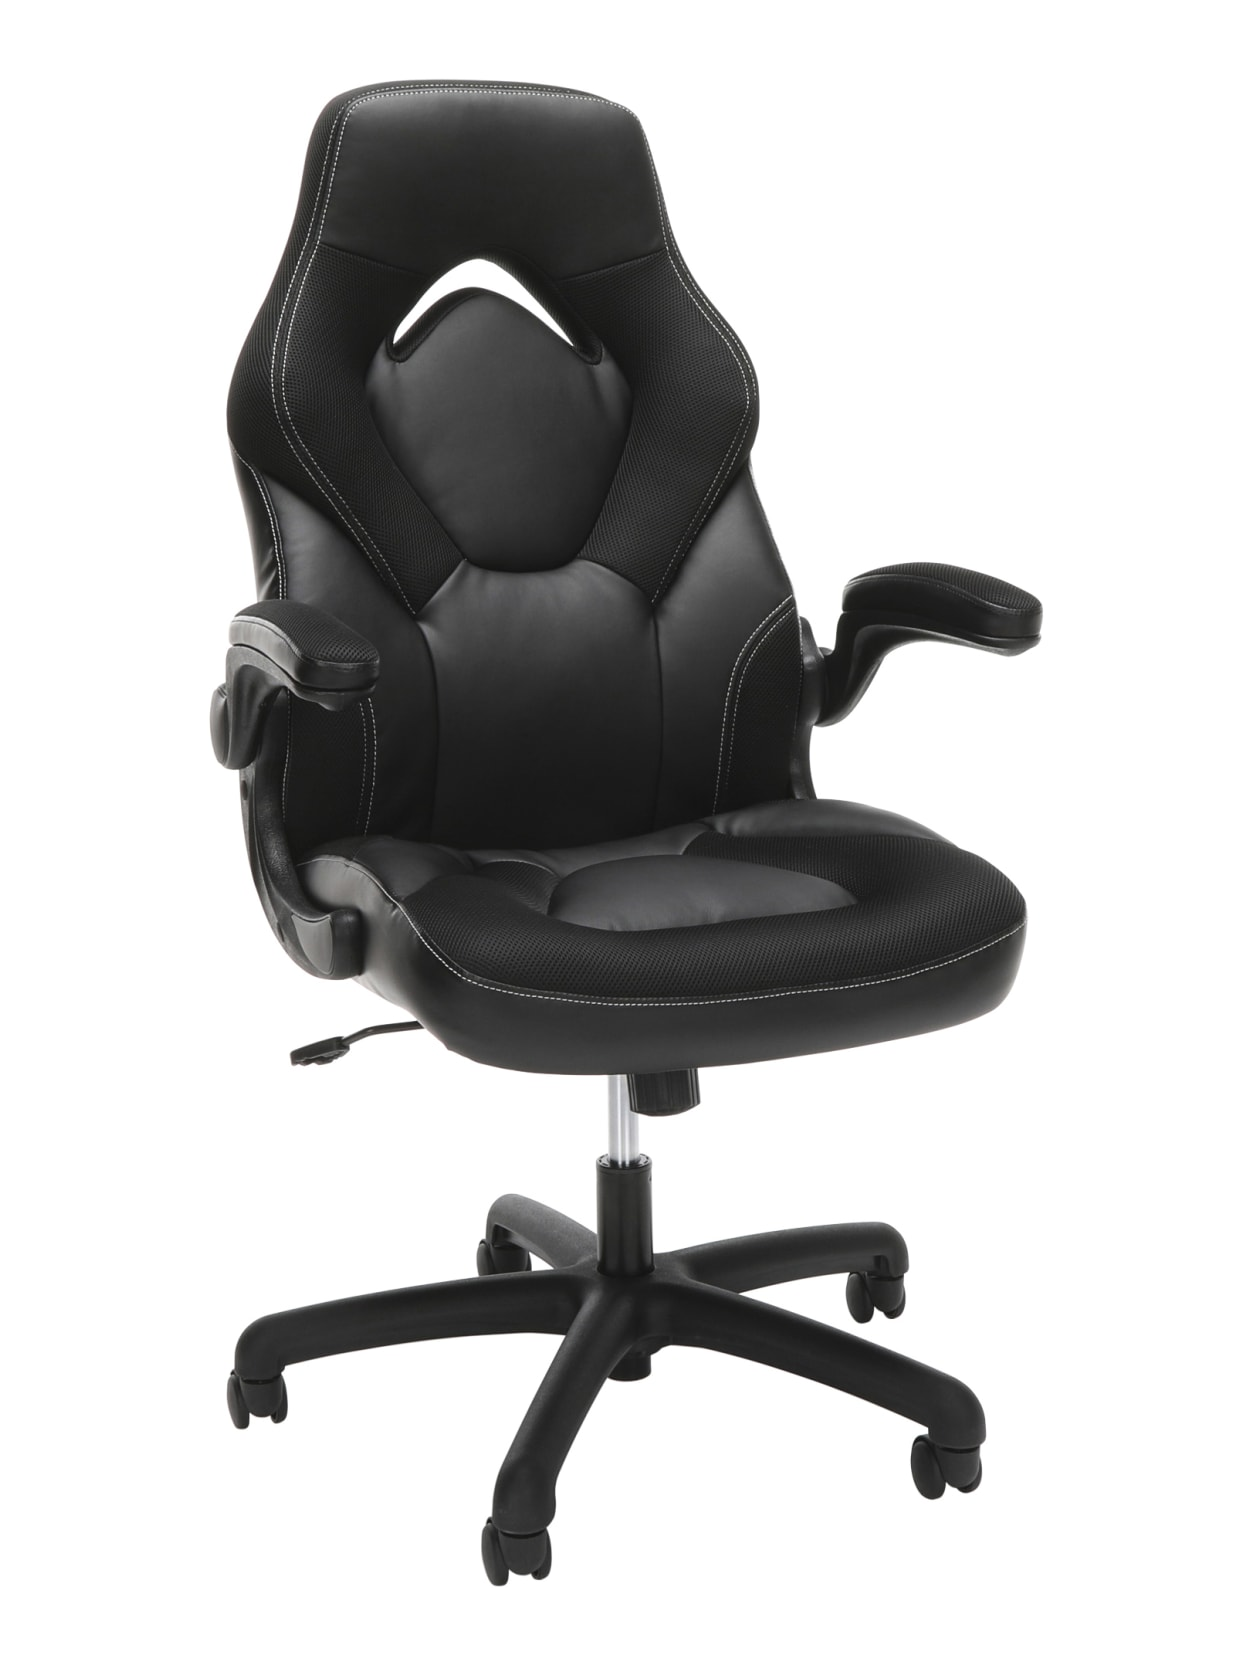 Ofm Essentials 3085 Gaming Chair Black Office Depot